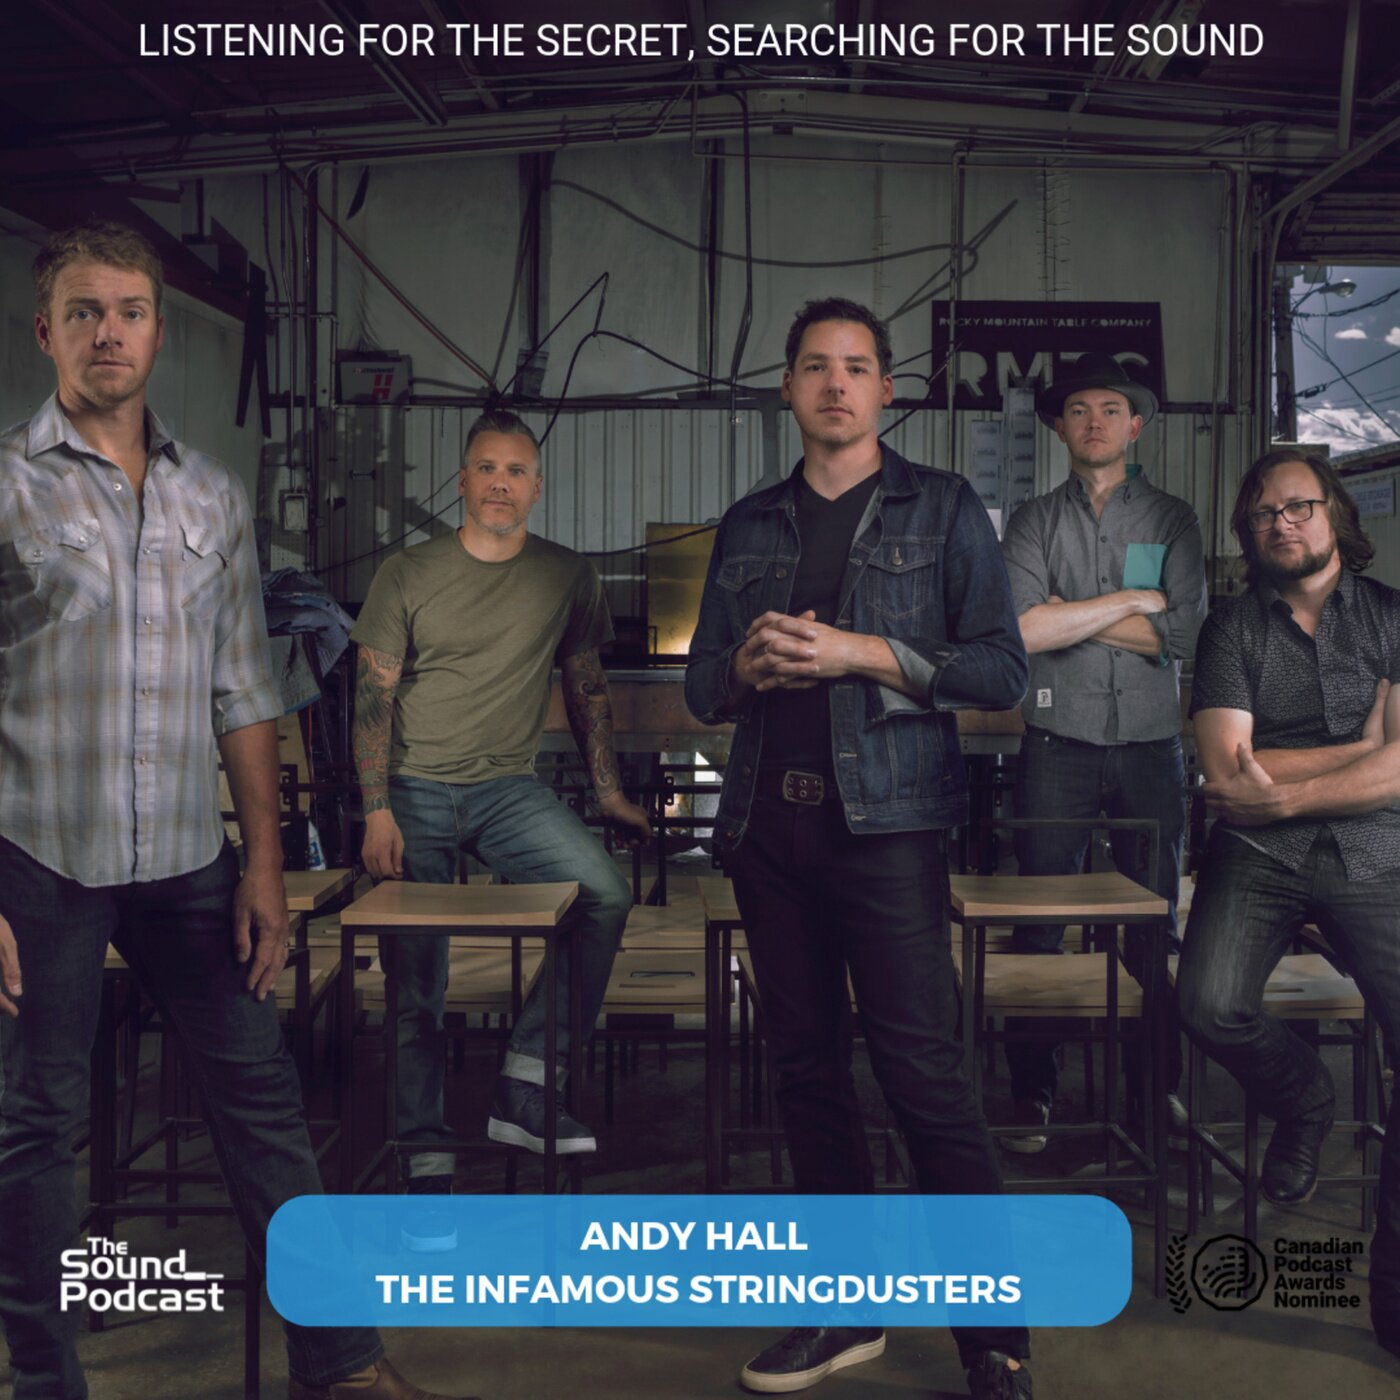 Episode 169: Andy Hall - The Infamous Stringdusters